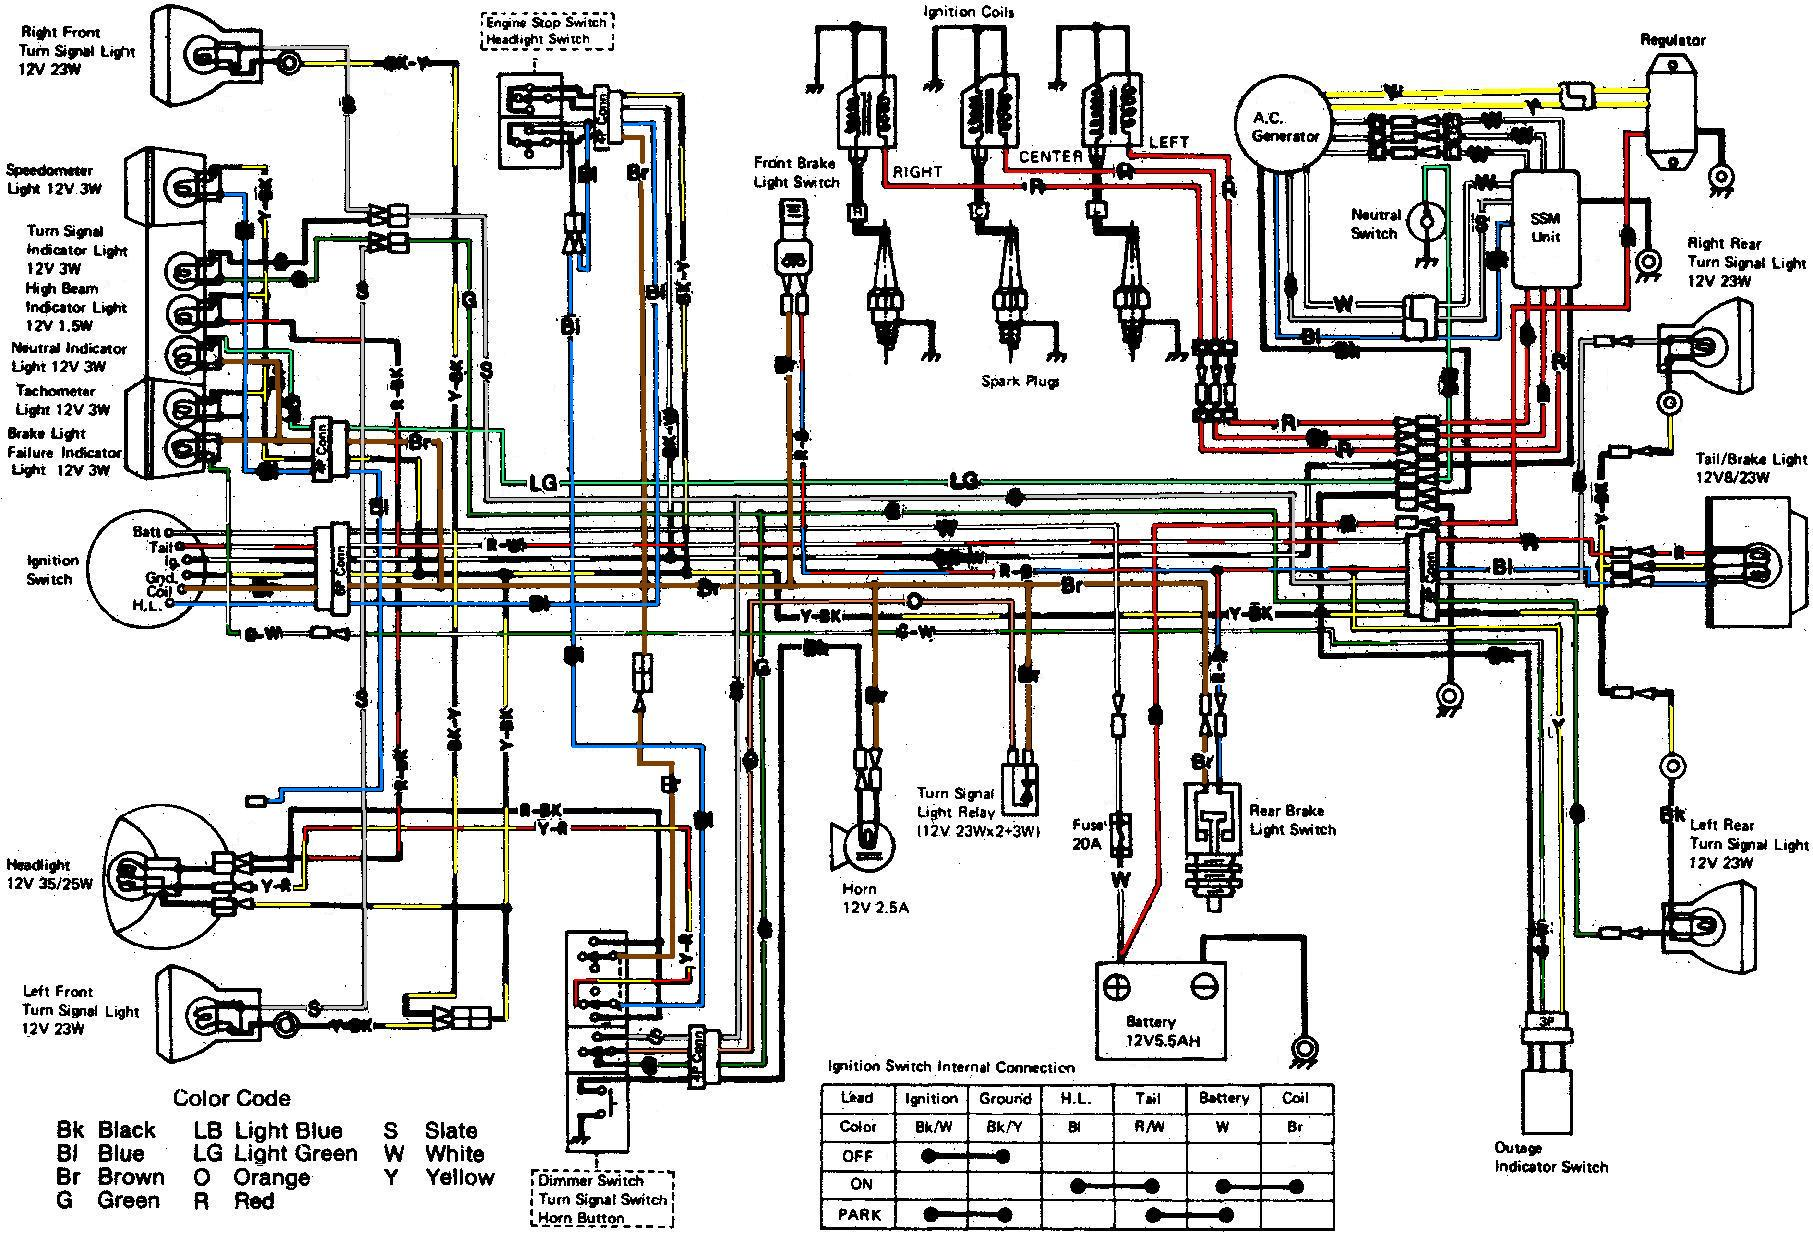 hight resolution of gt 750 wiring diagram wiring library 1974 suzuki gt550 wiring diagram printable wiring diagram schematic